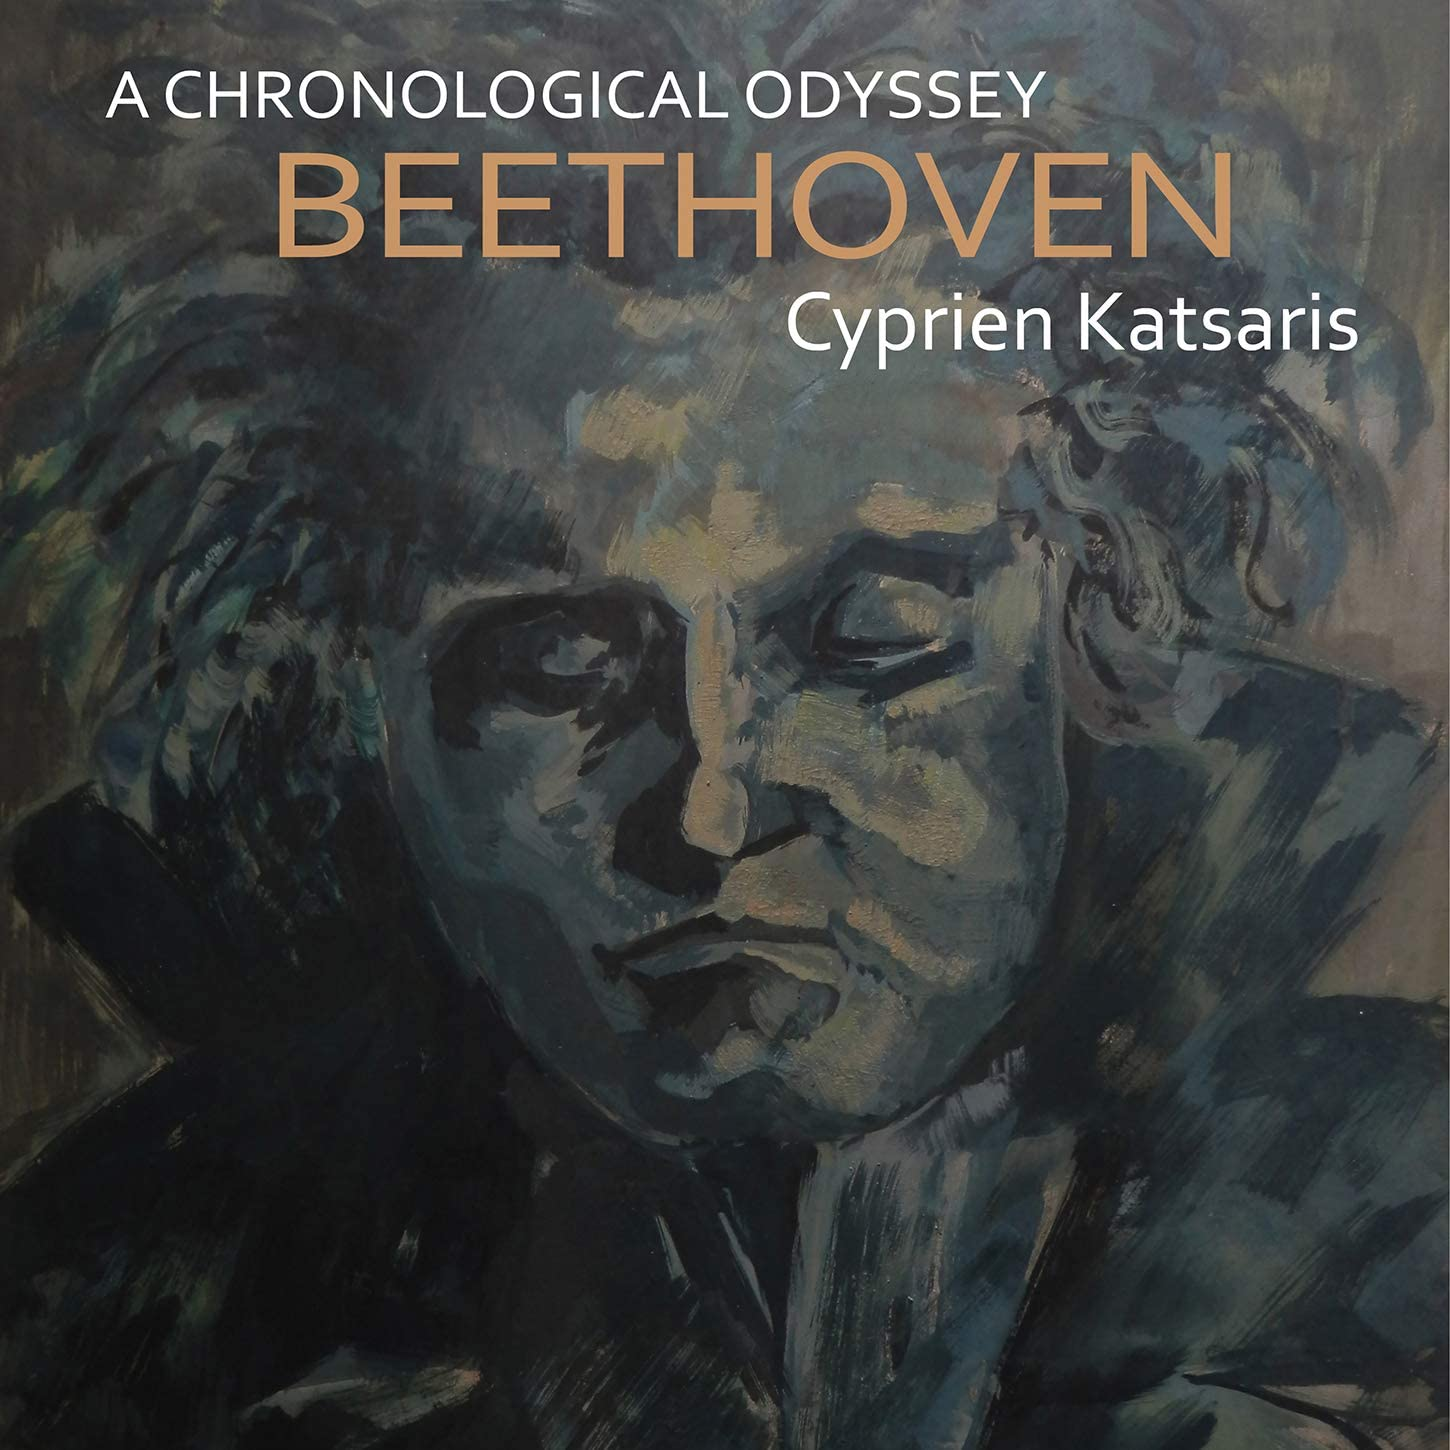 Review of BEETHOVEN A Chronological Odyssey (Cyprien Katsaris)